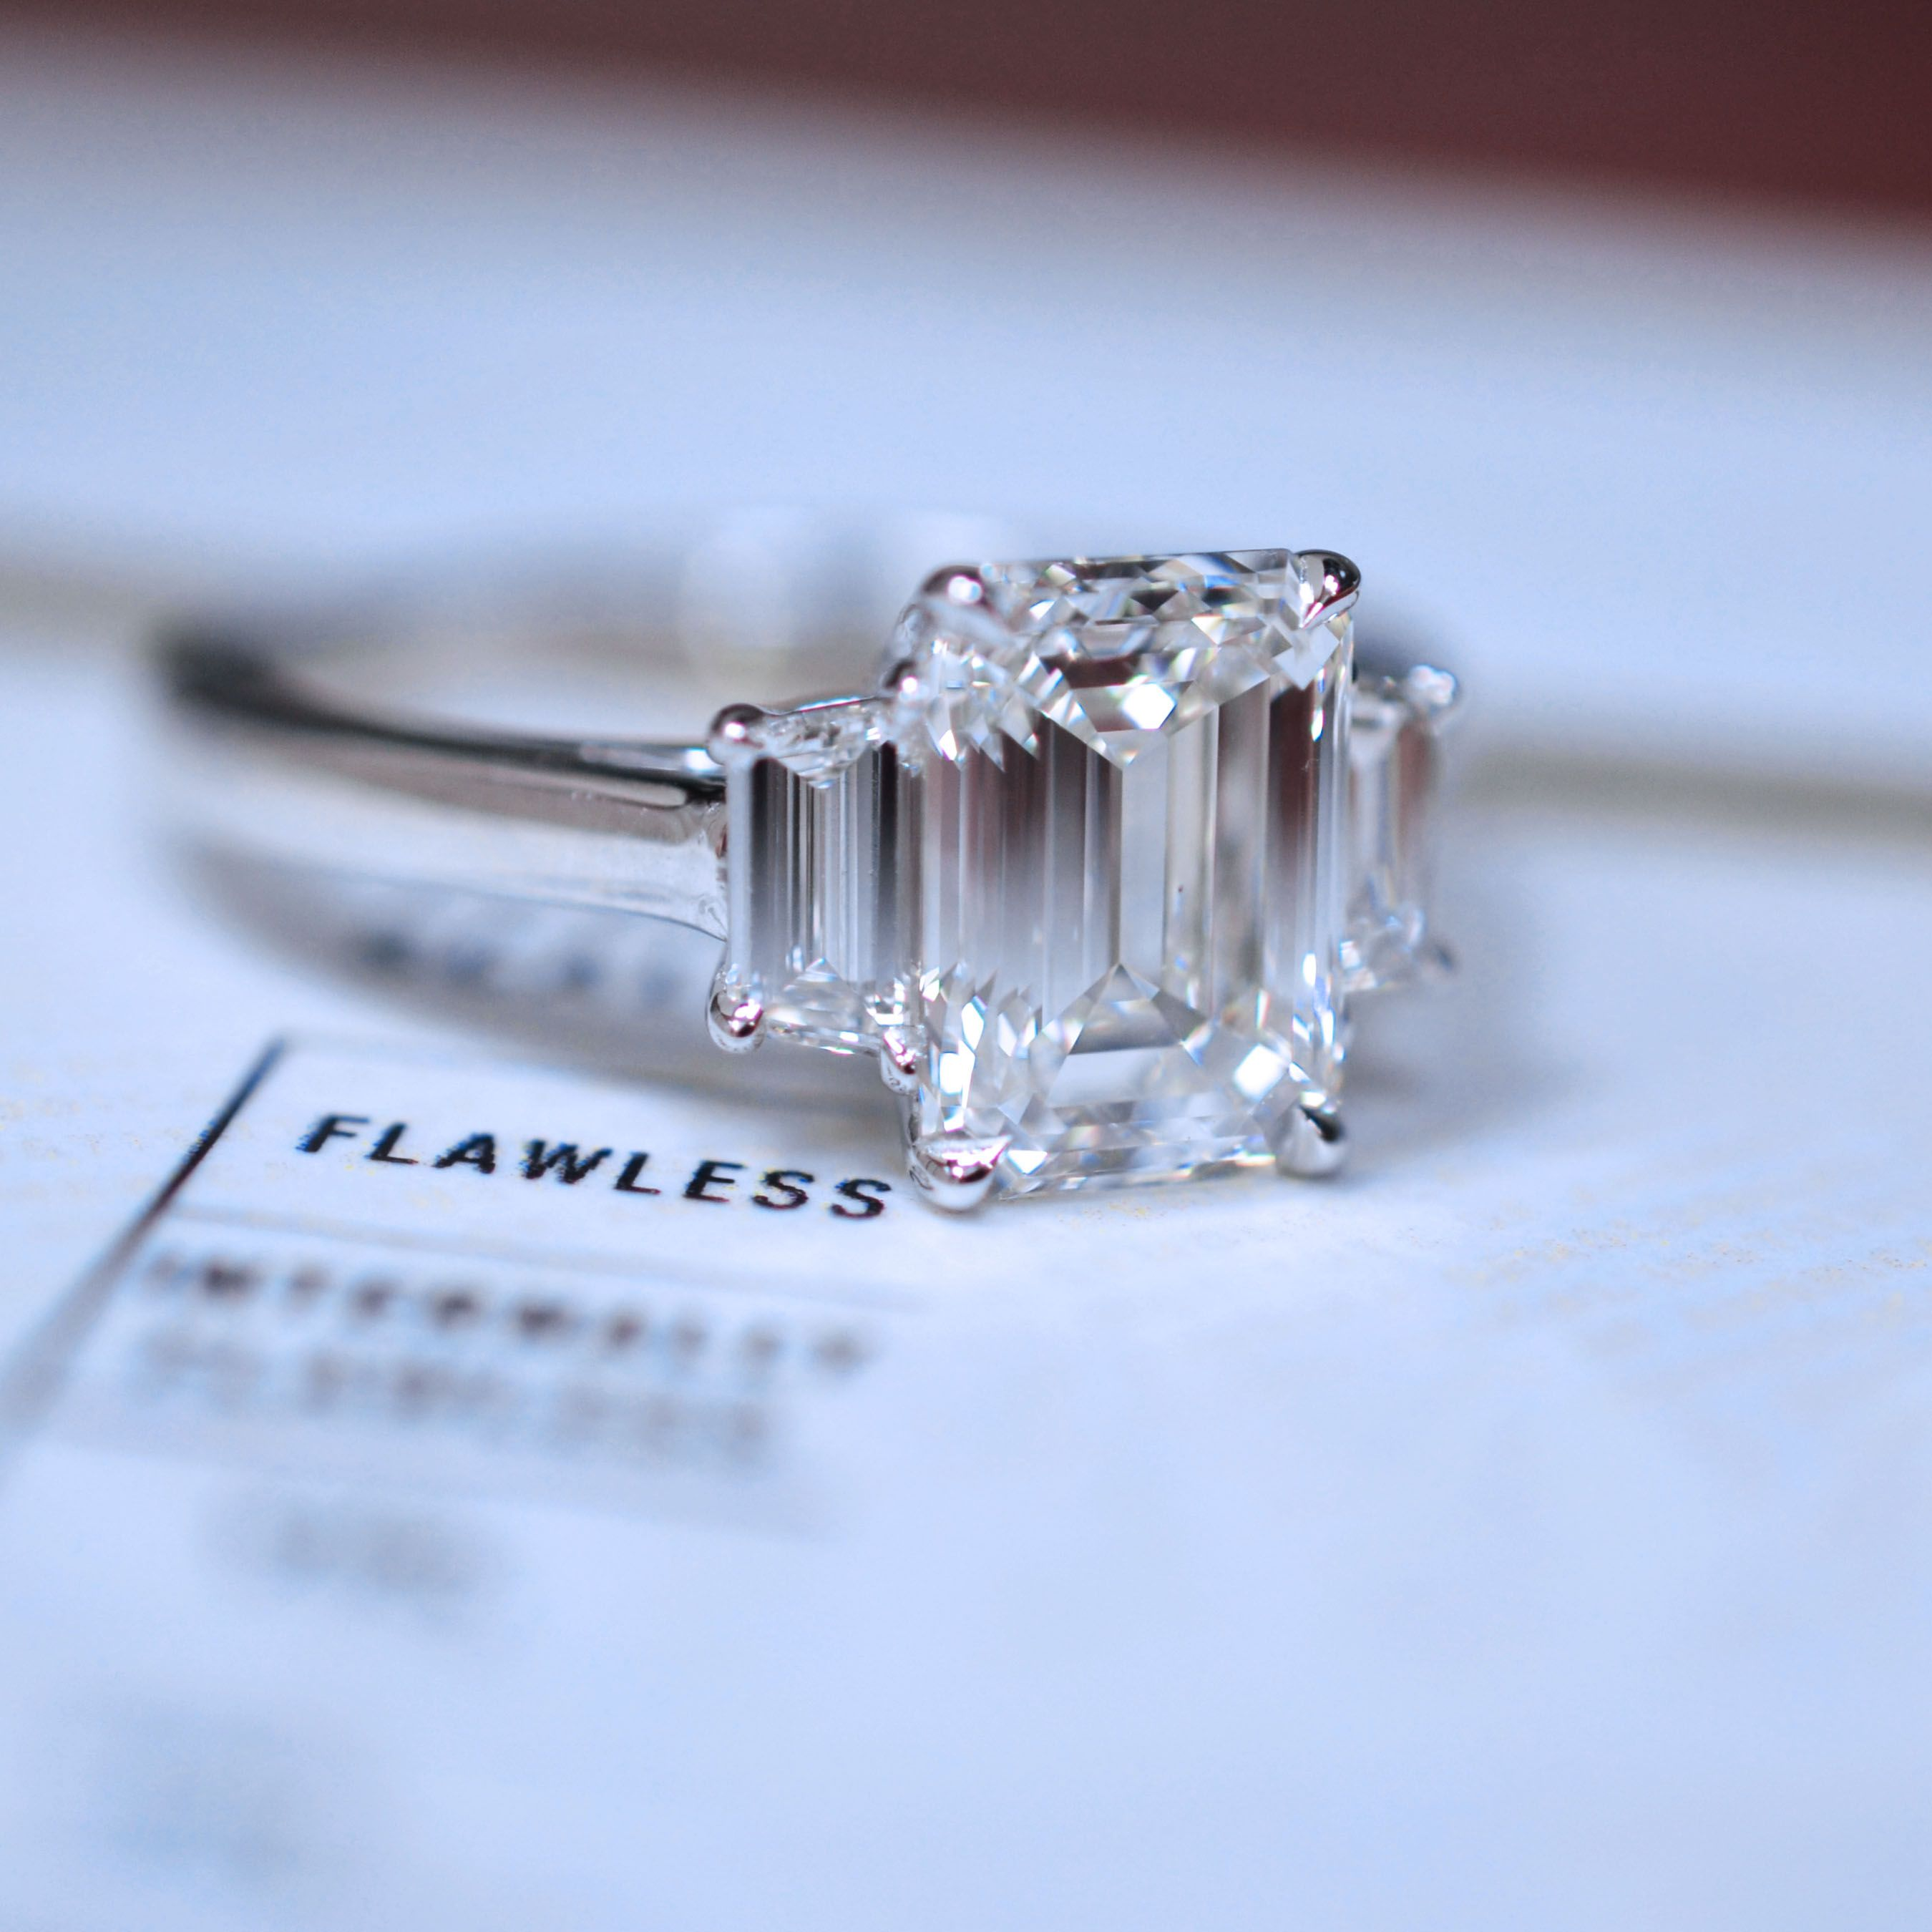 east eb west ring pin emerald cut diamond engagement